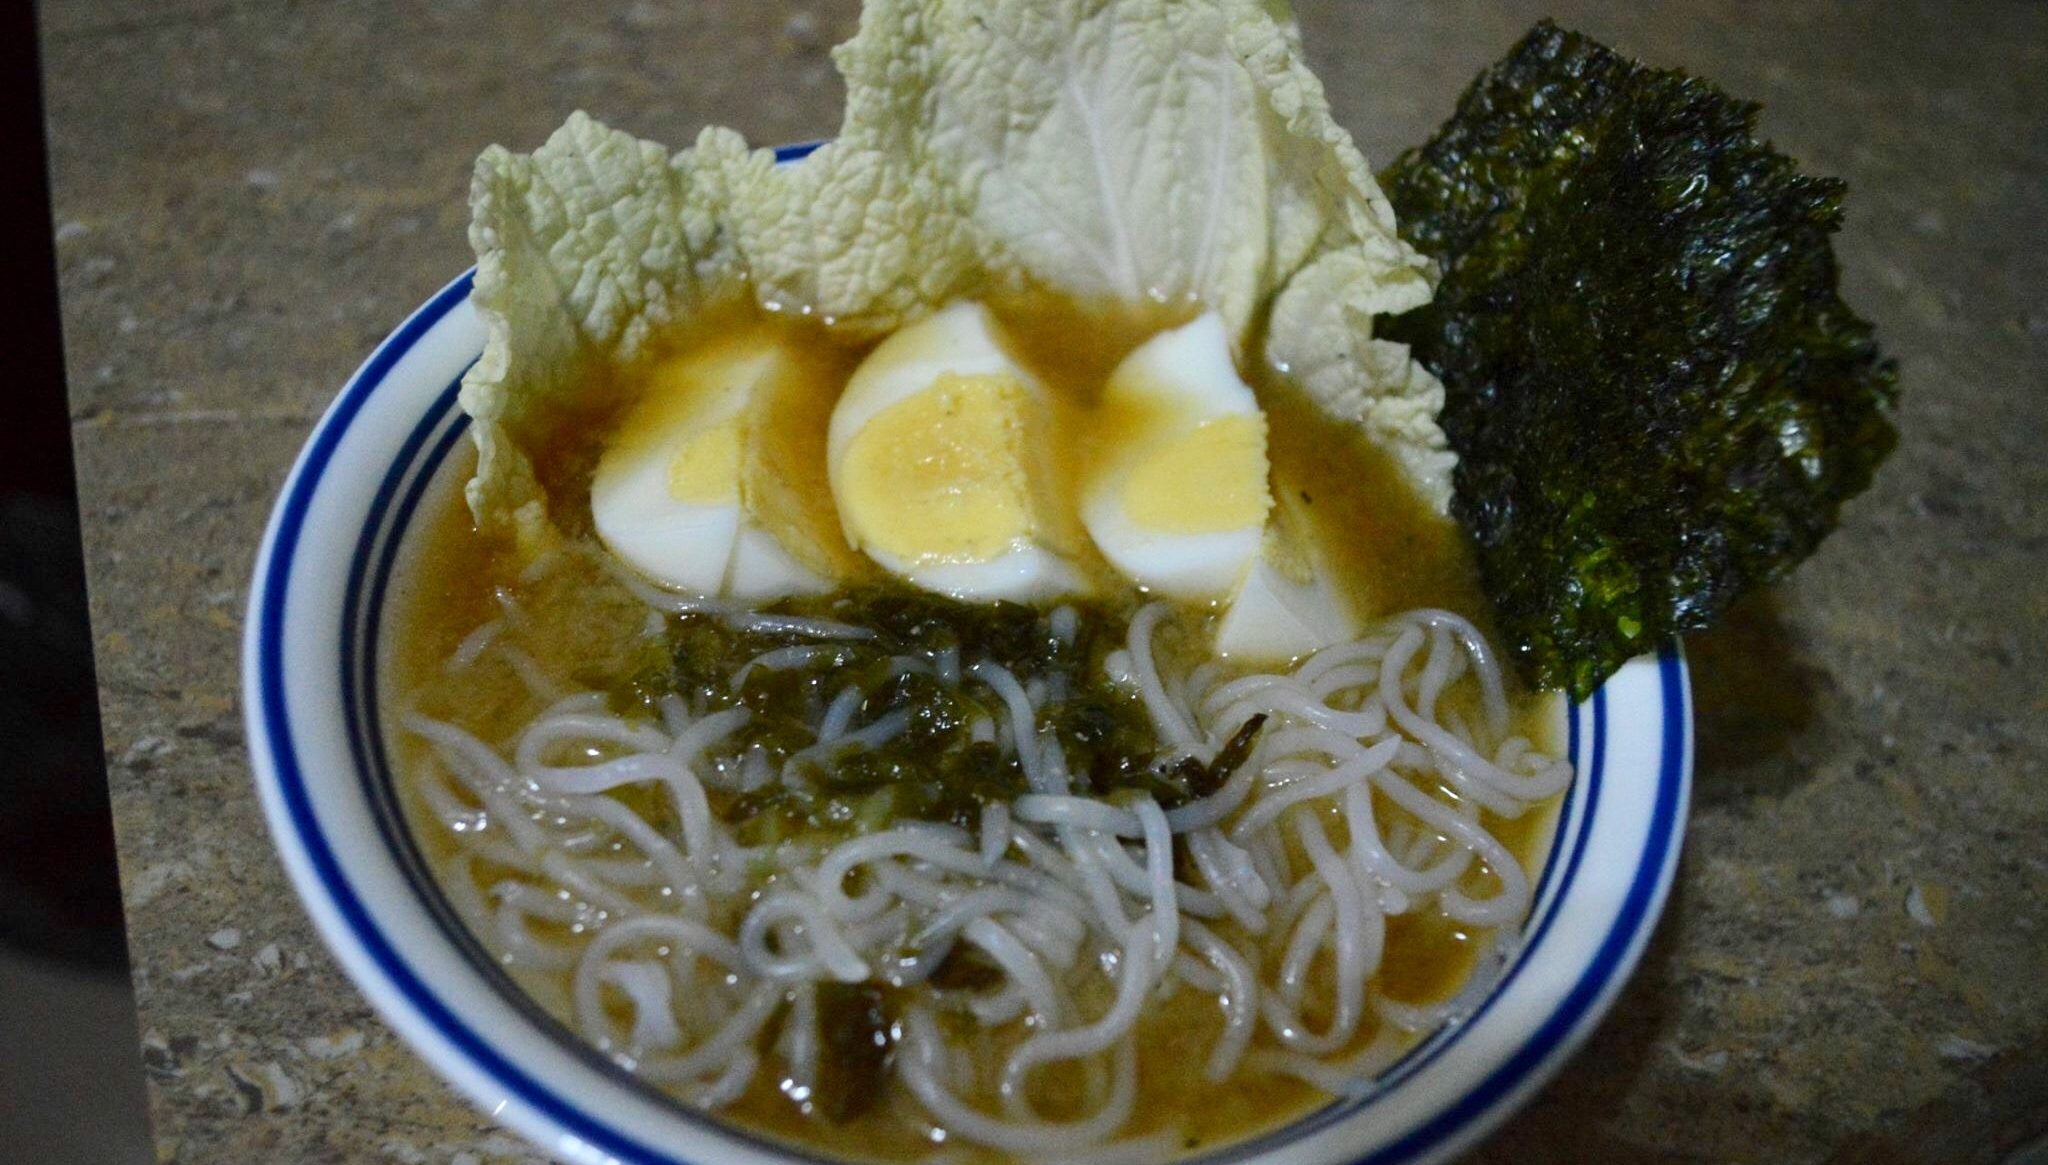 Miso soup using shiritaki noodles